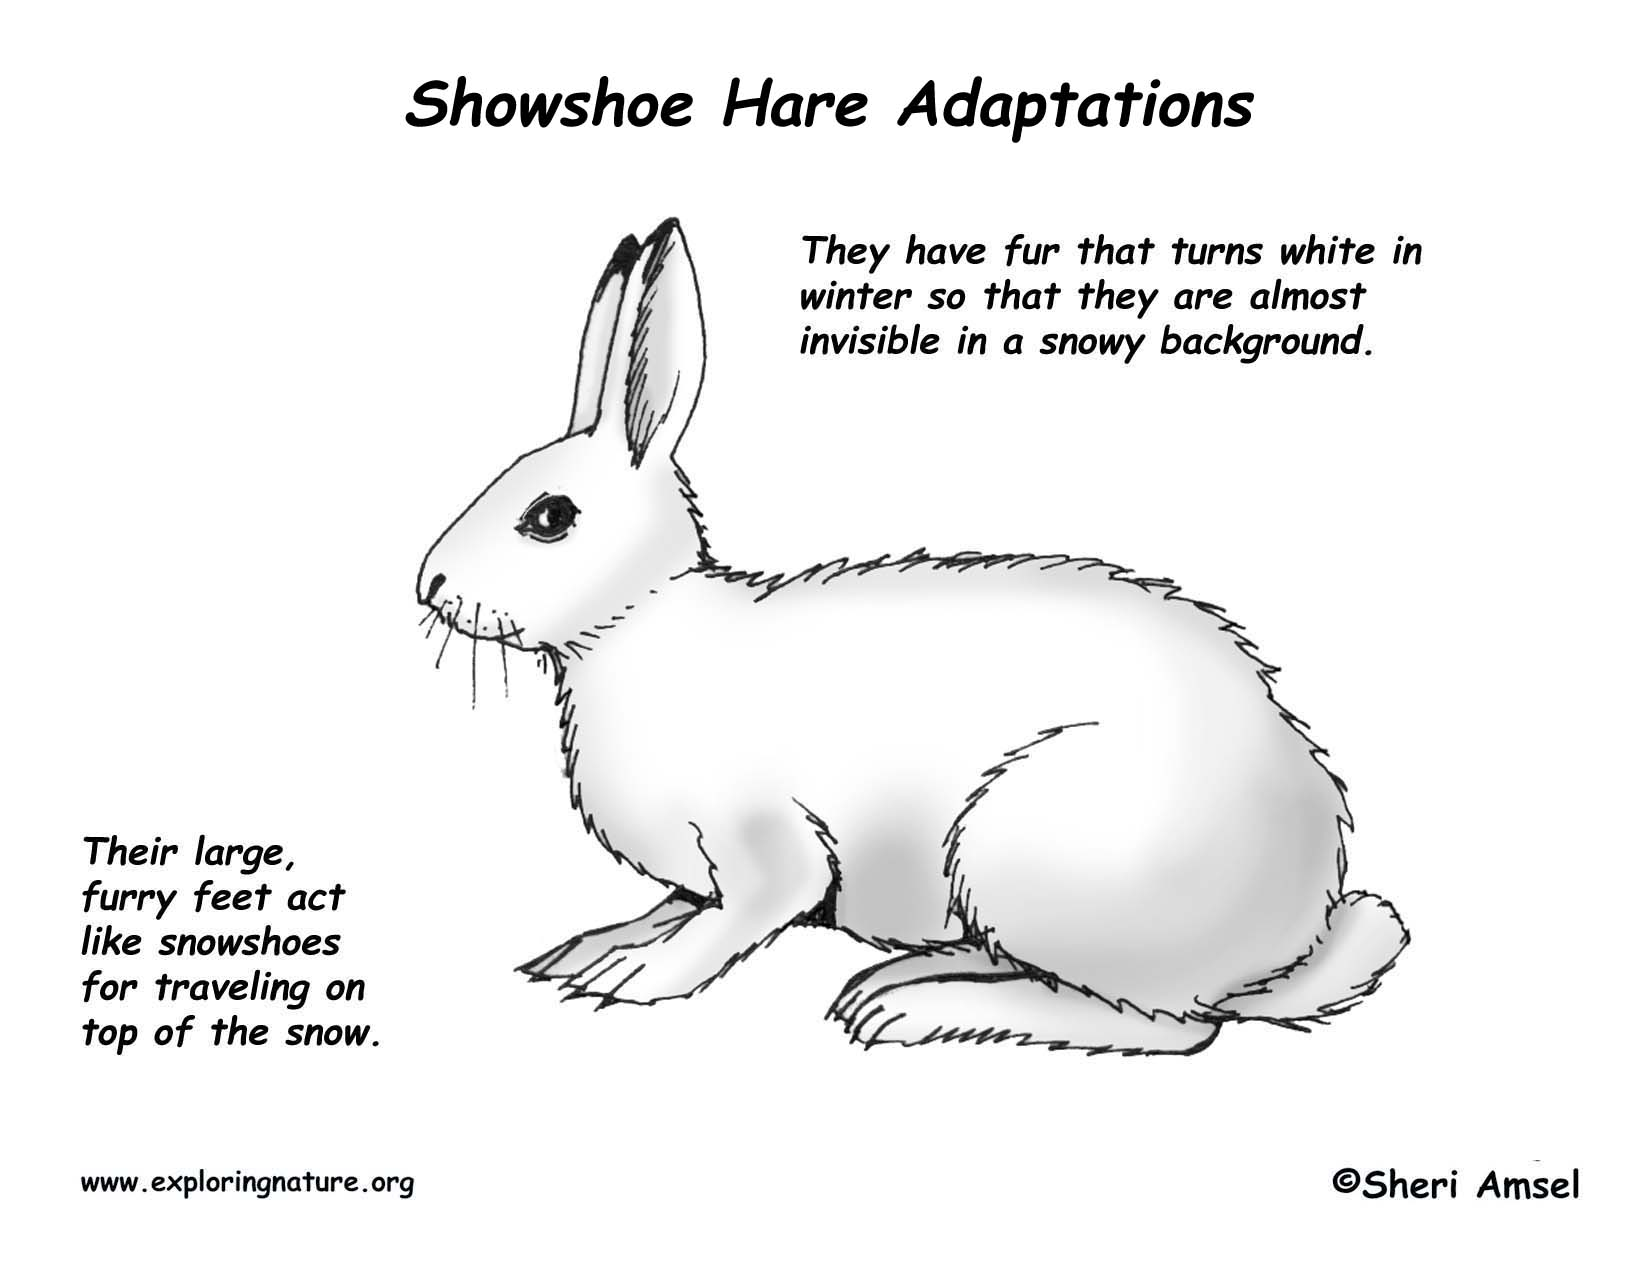 Adaptations Of The Snowshoe Hare